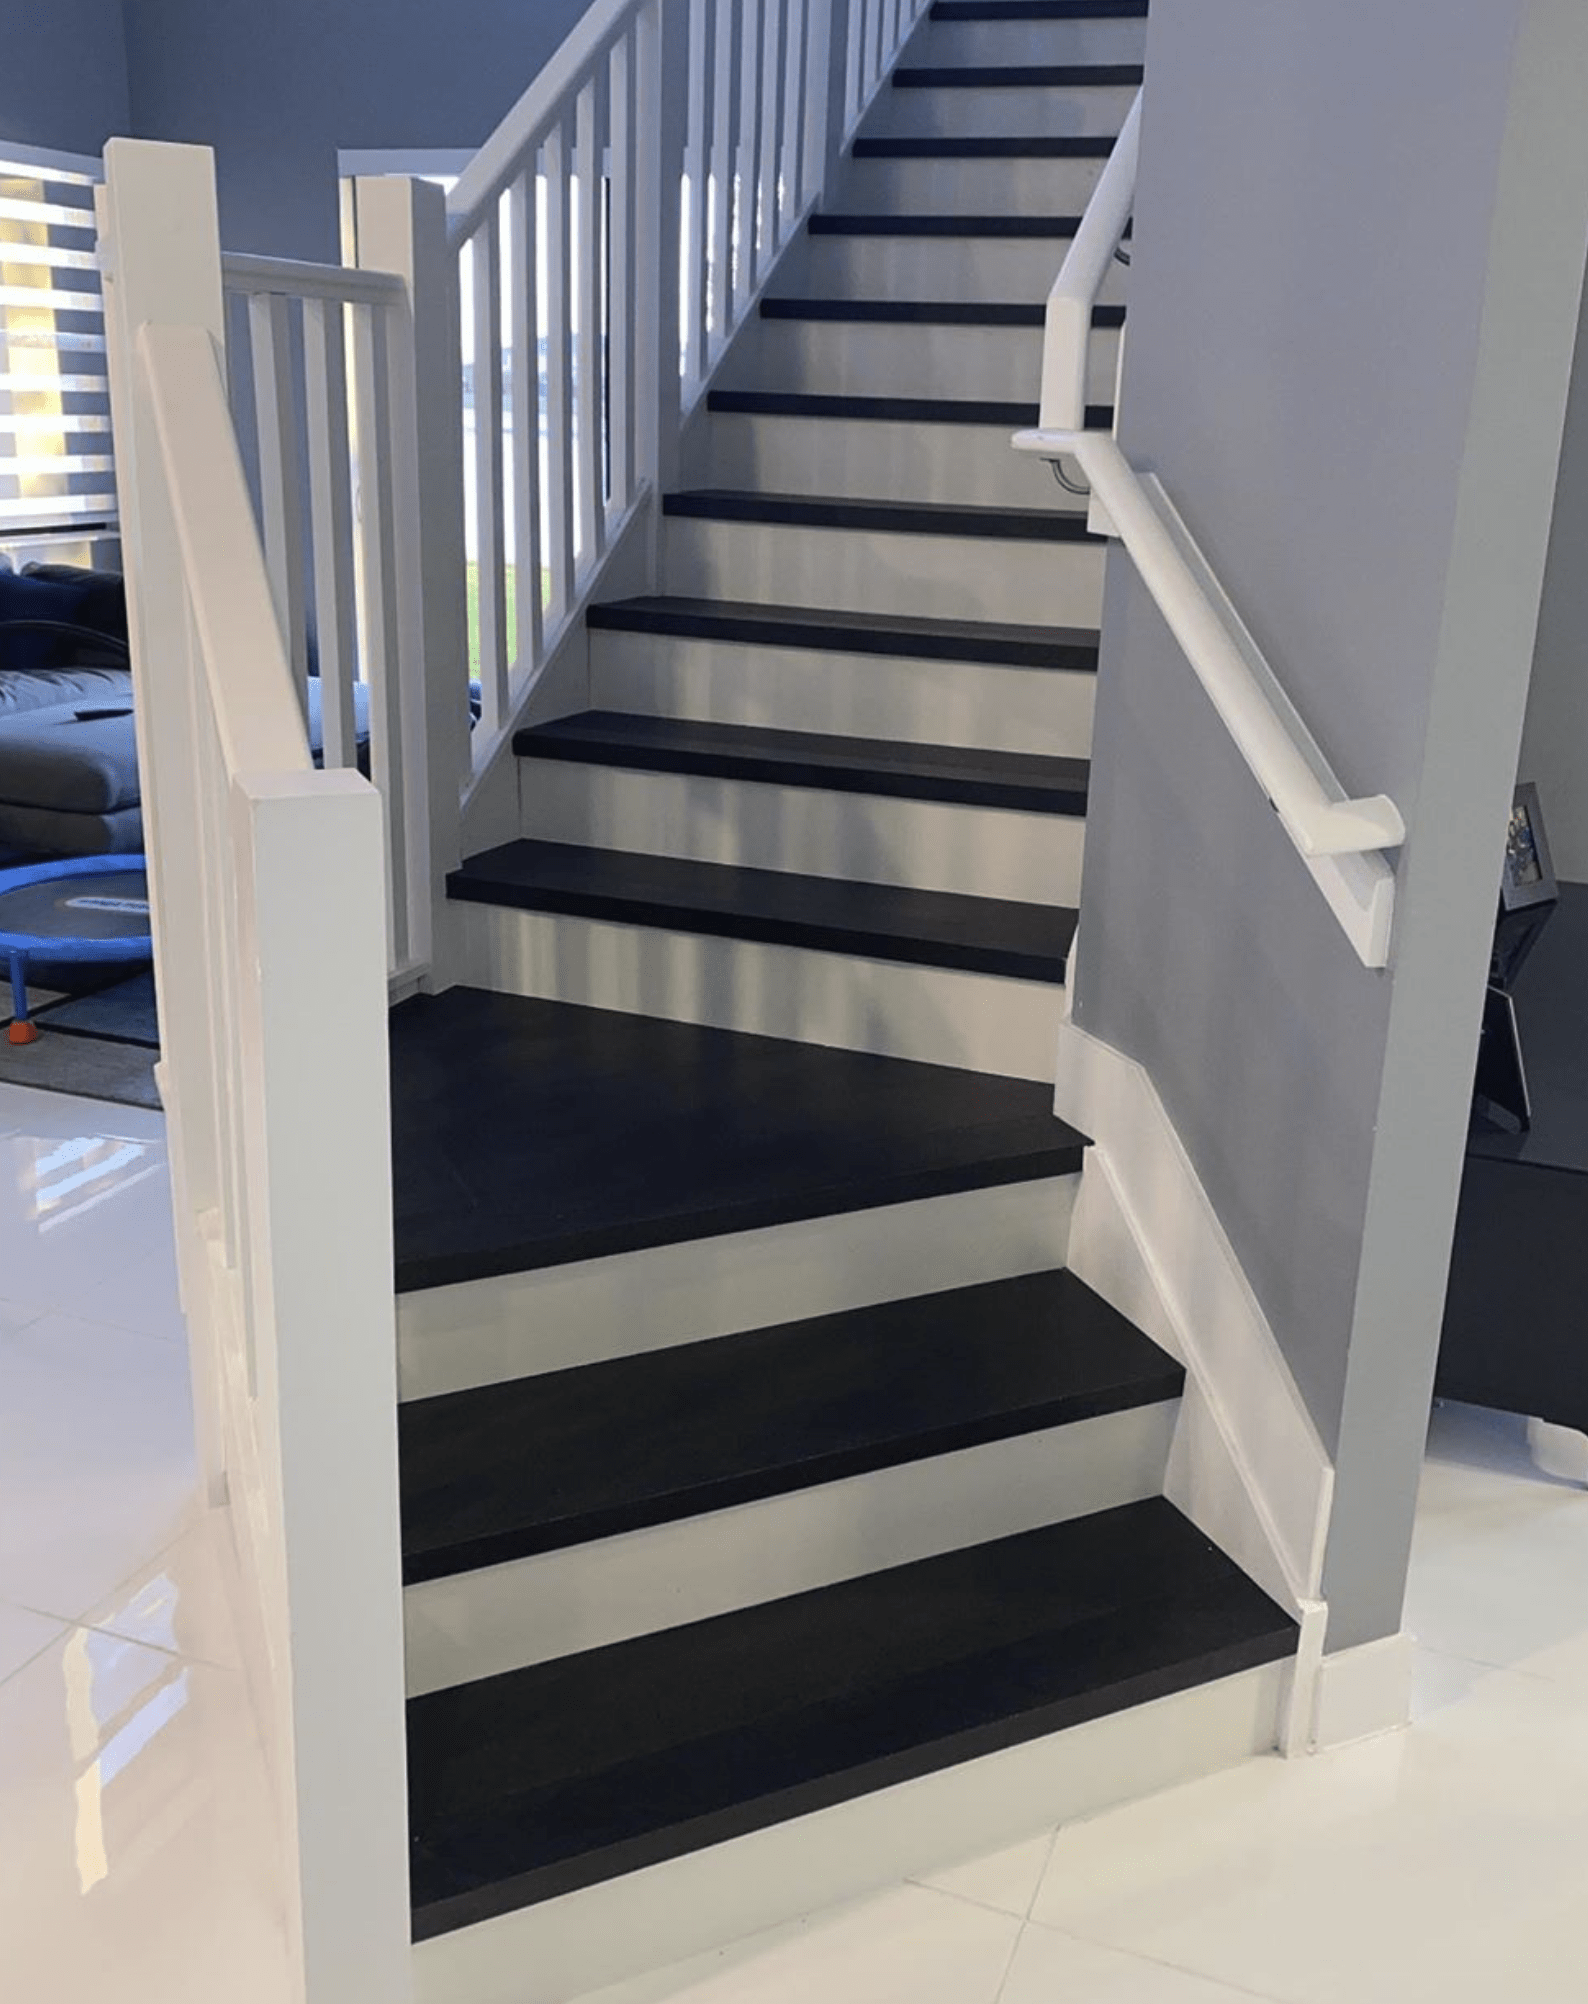 Hardwood stairs in Miami Beach, FL from Global Wood Floors